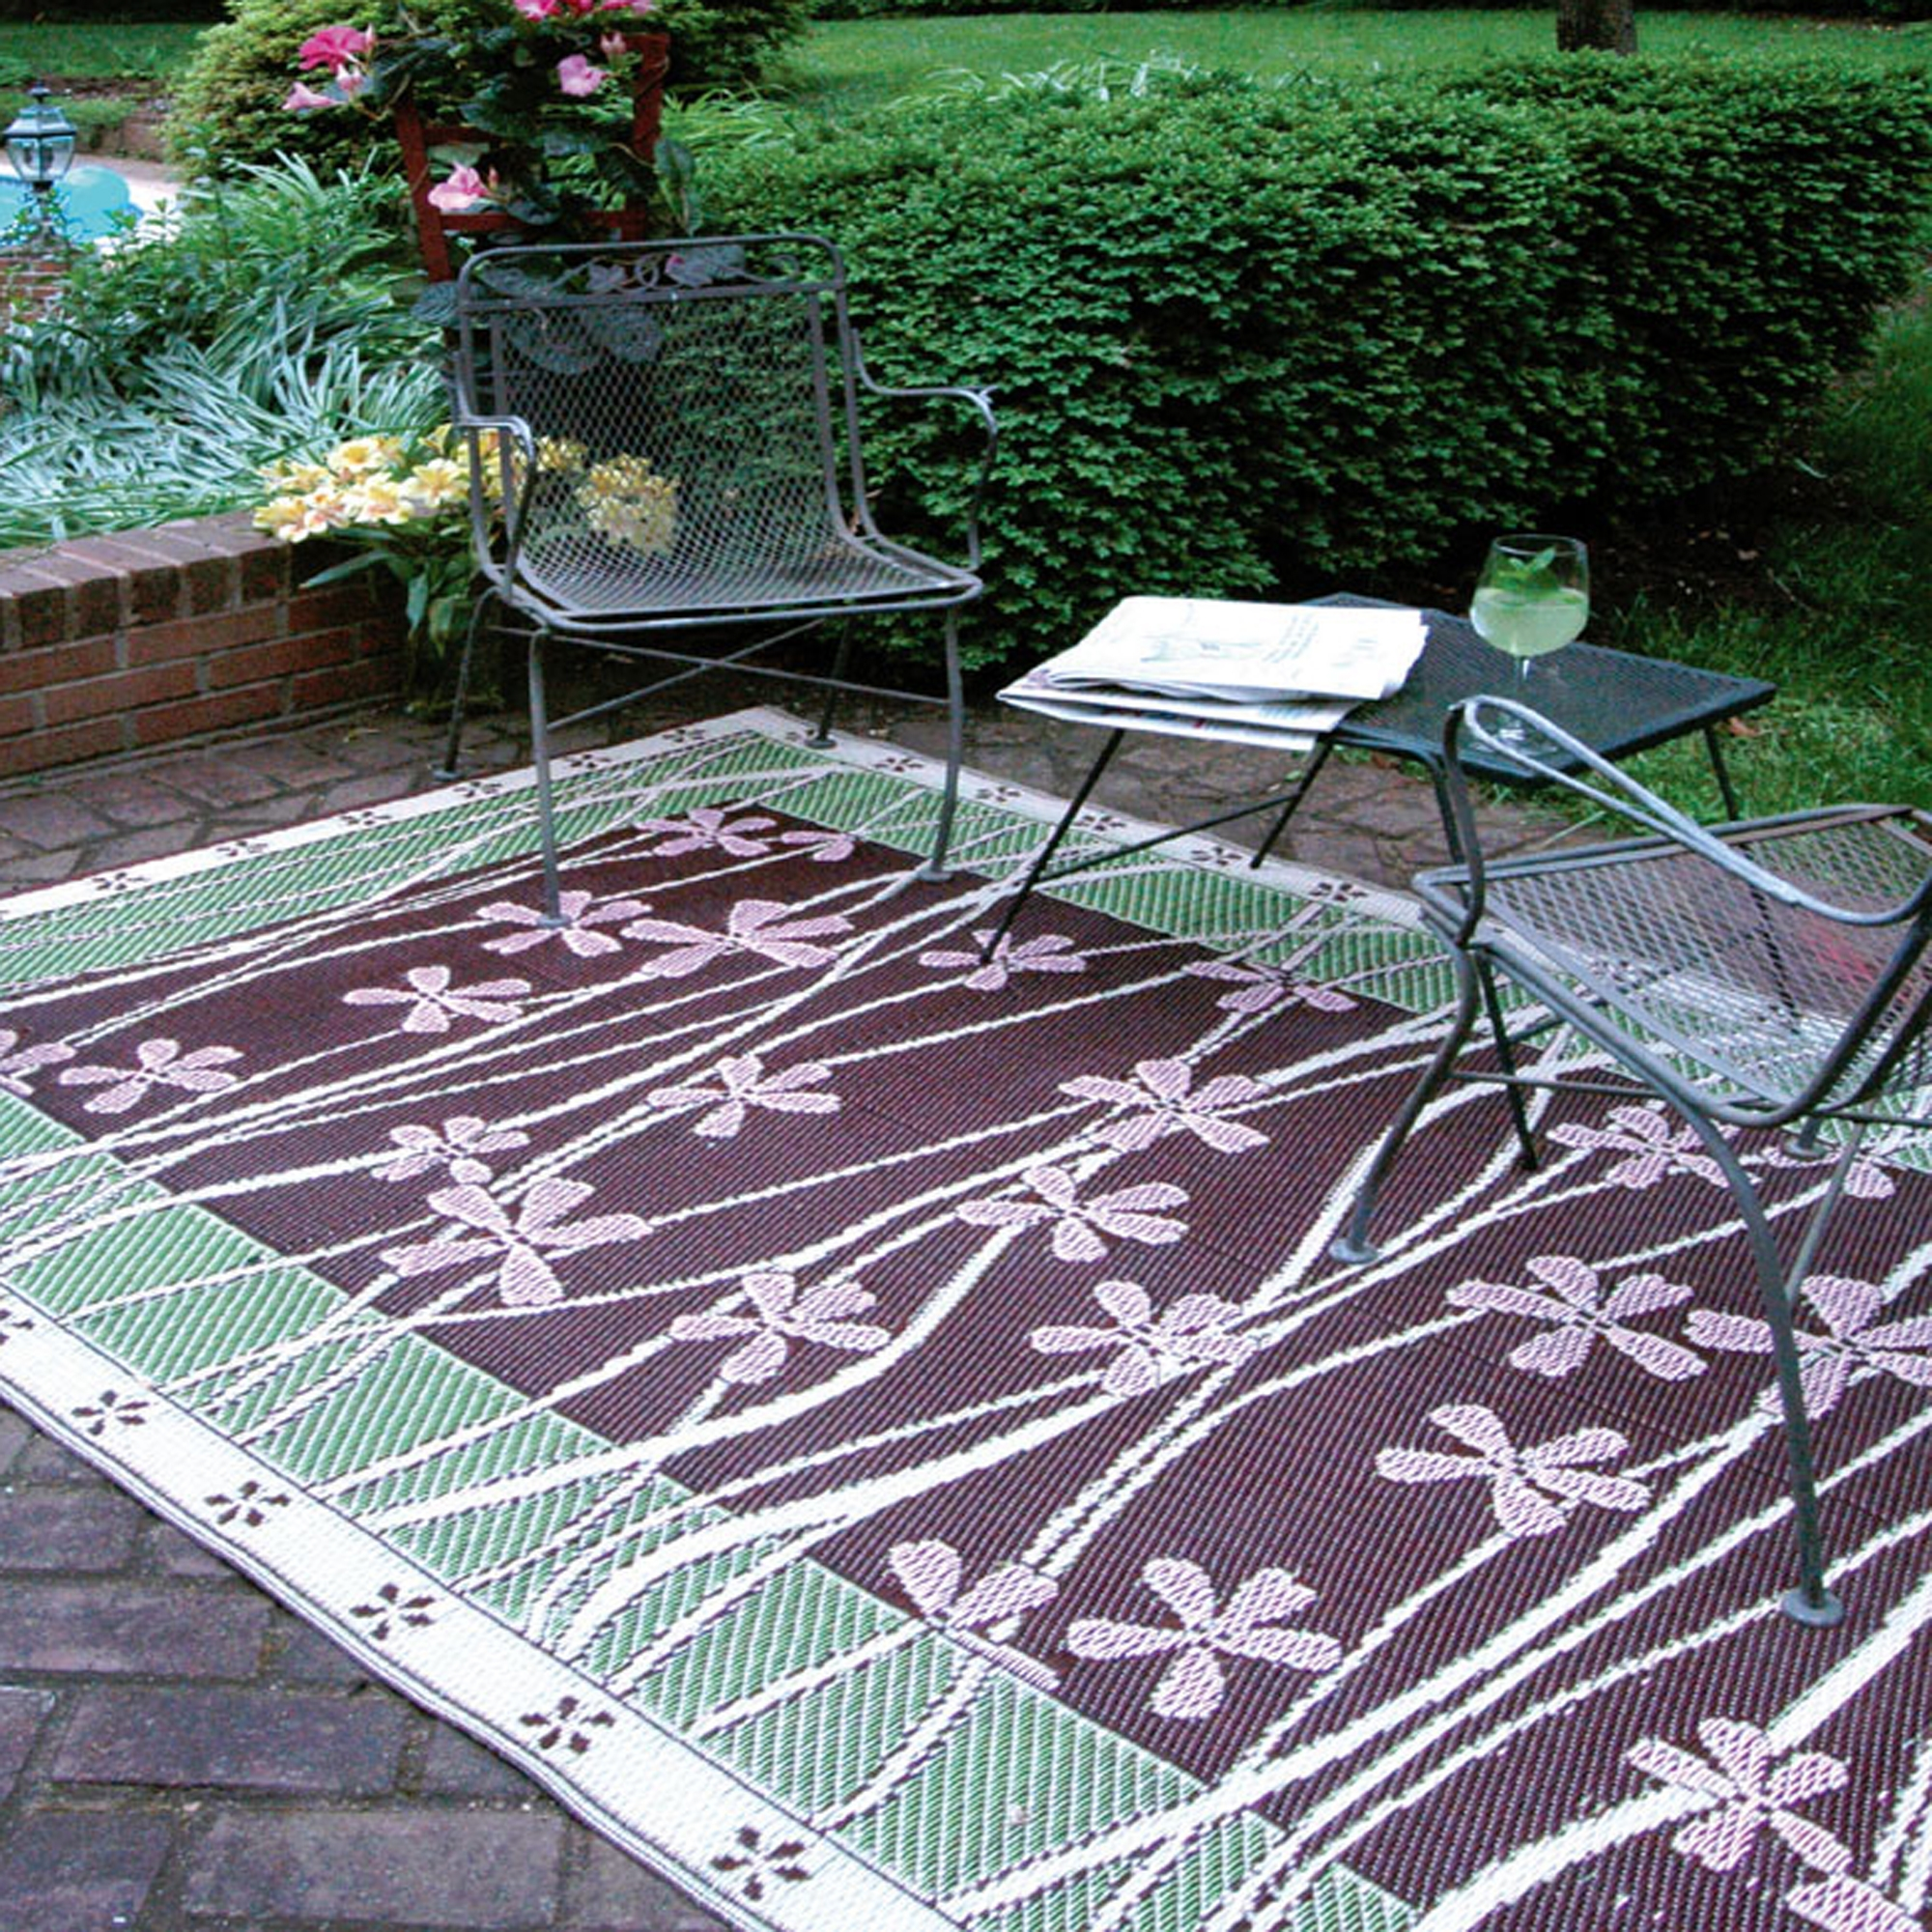 Plastic Outdoor Rug Mat: Recycled Plastic Outdoor Rugs: Environmentally Friendly